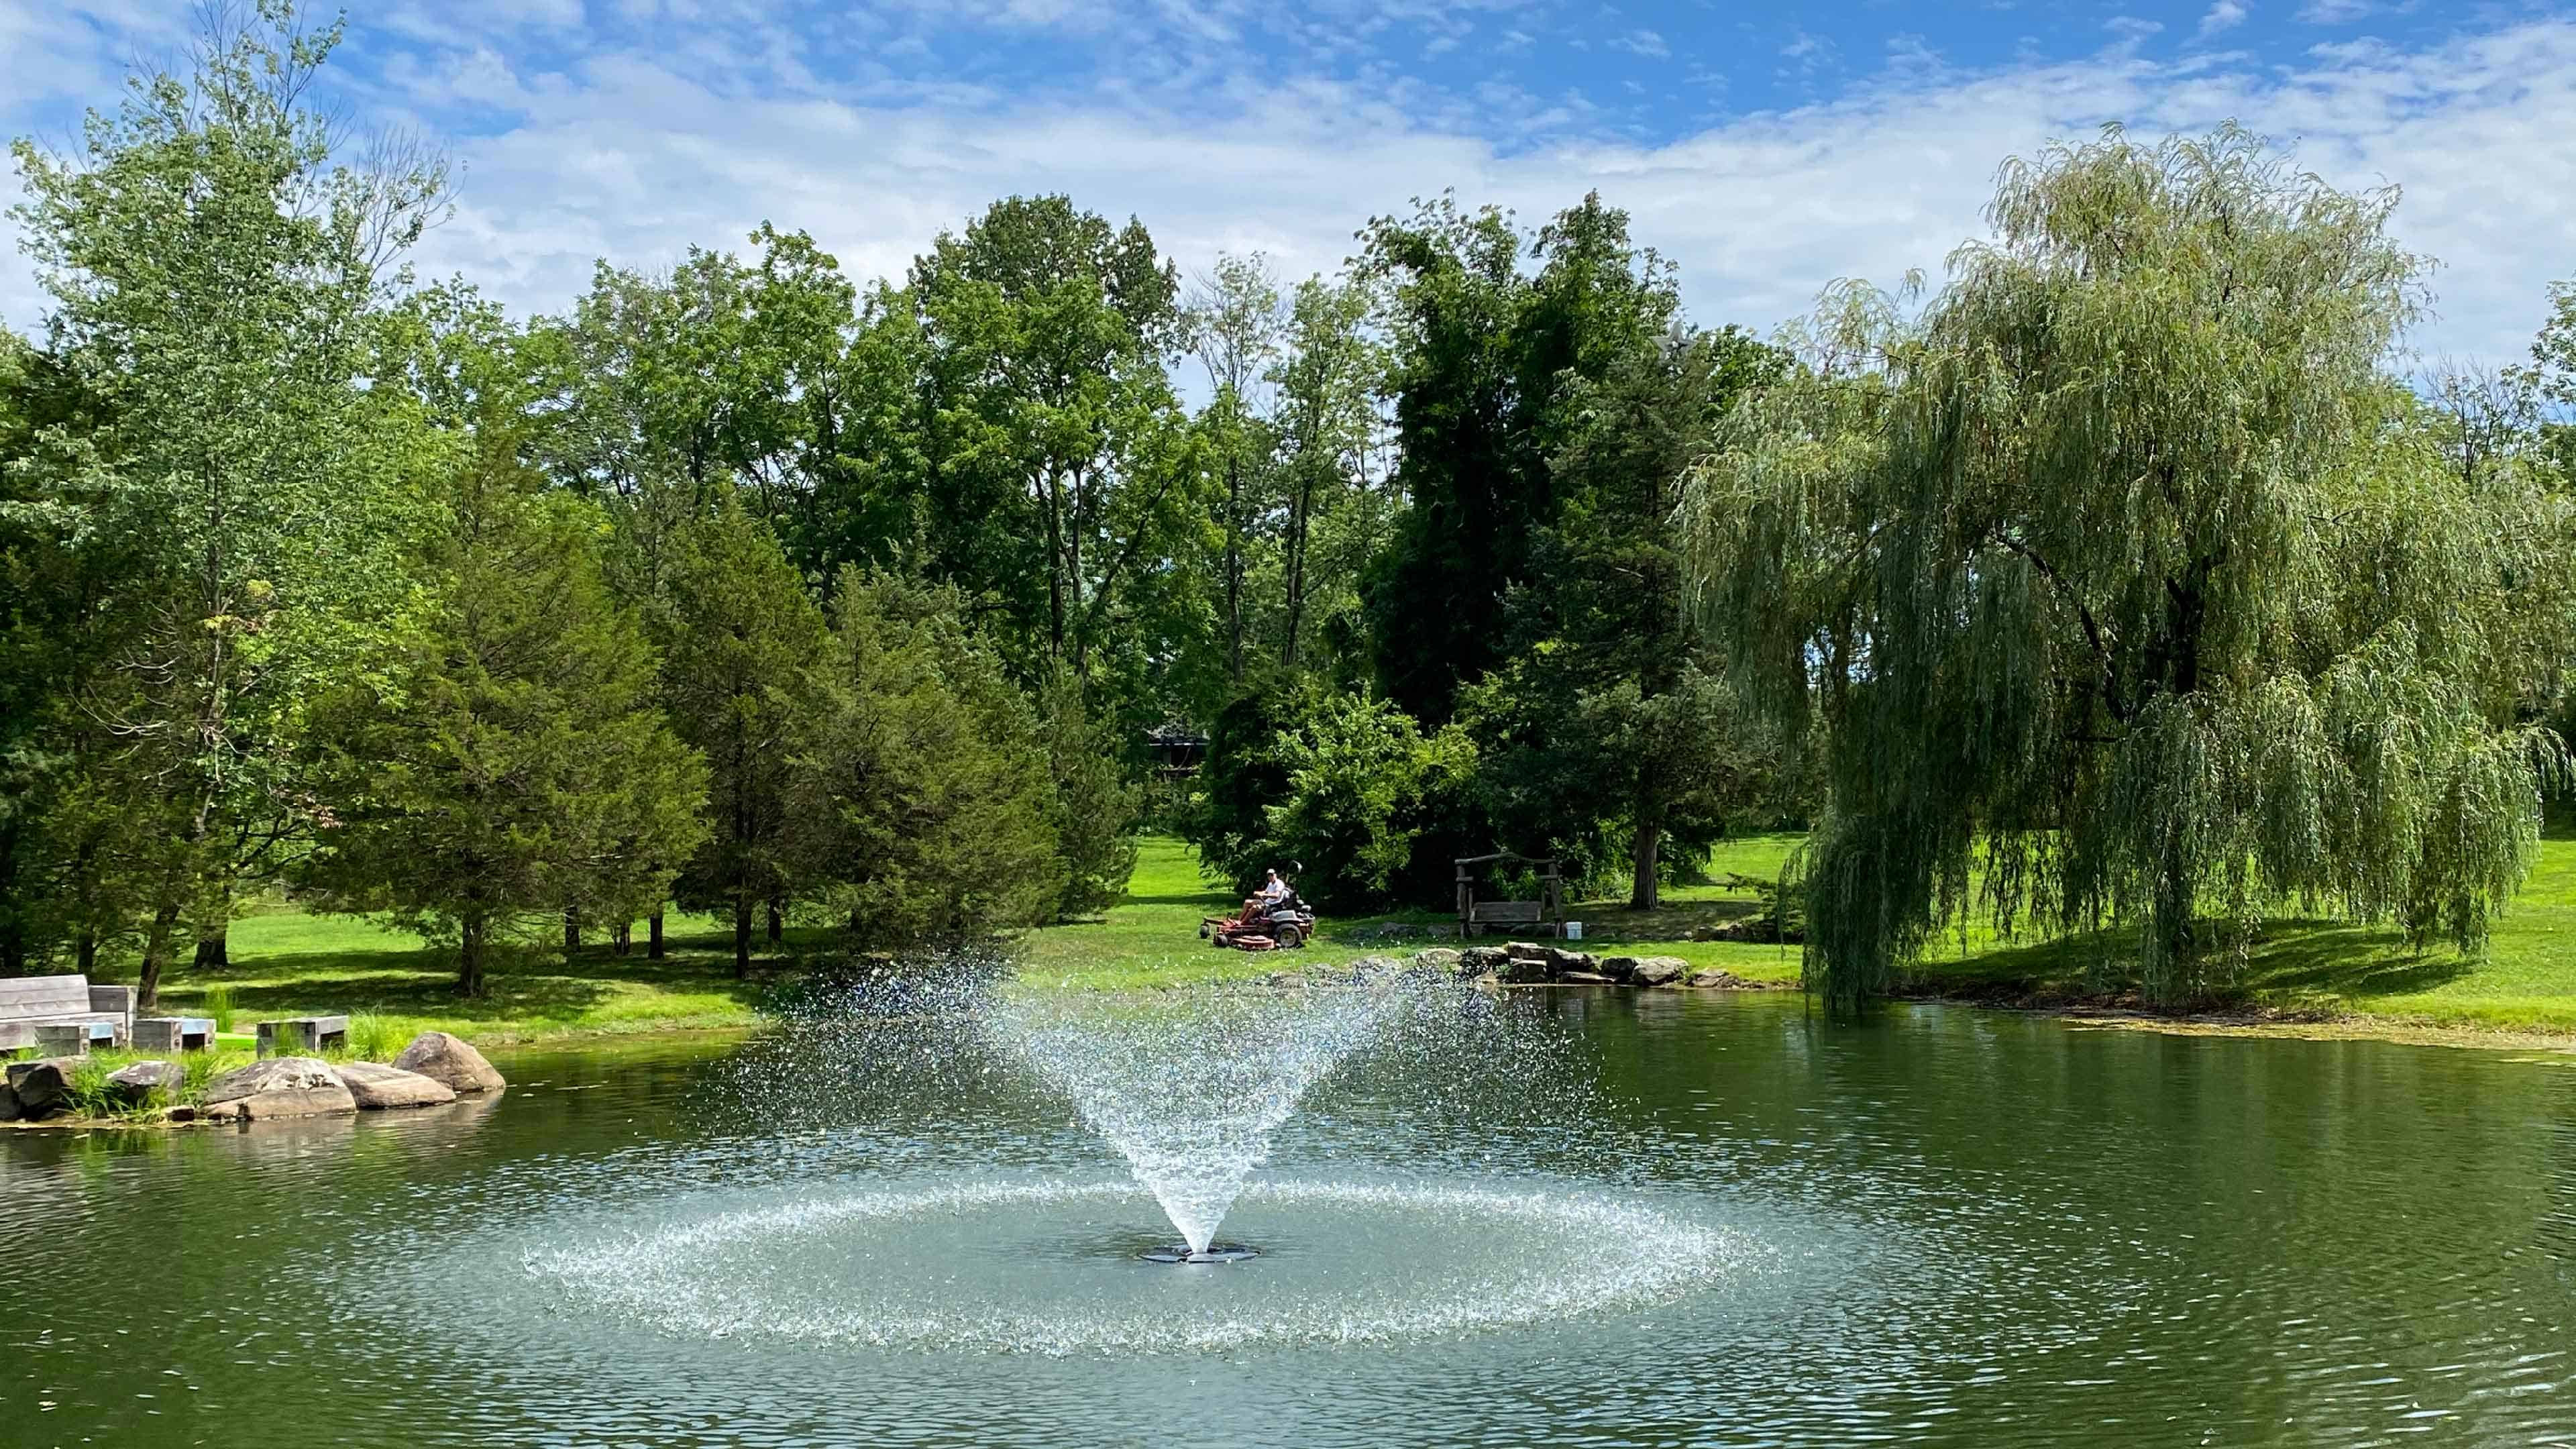 Regular water feature Mmaintenance keeps water running clear and clean.